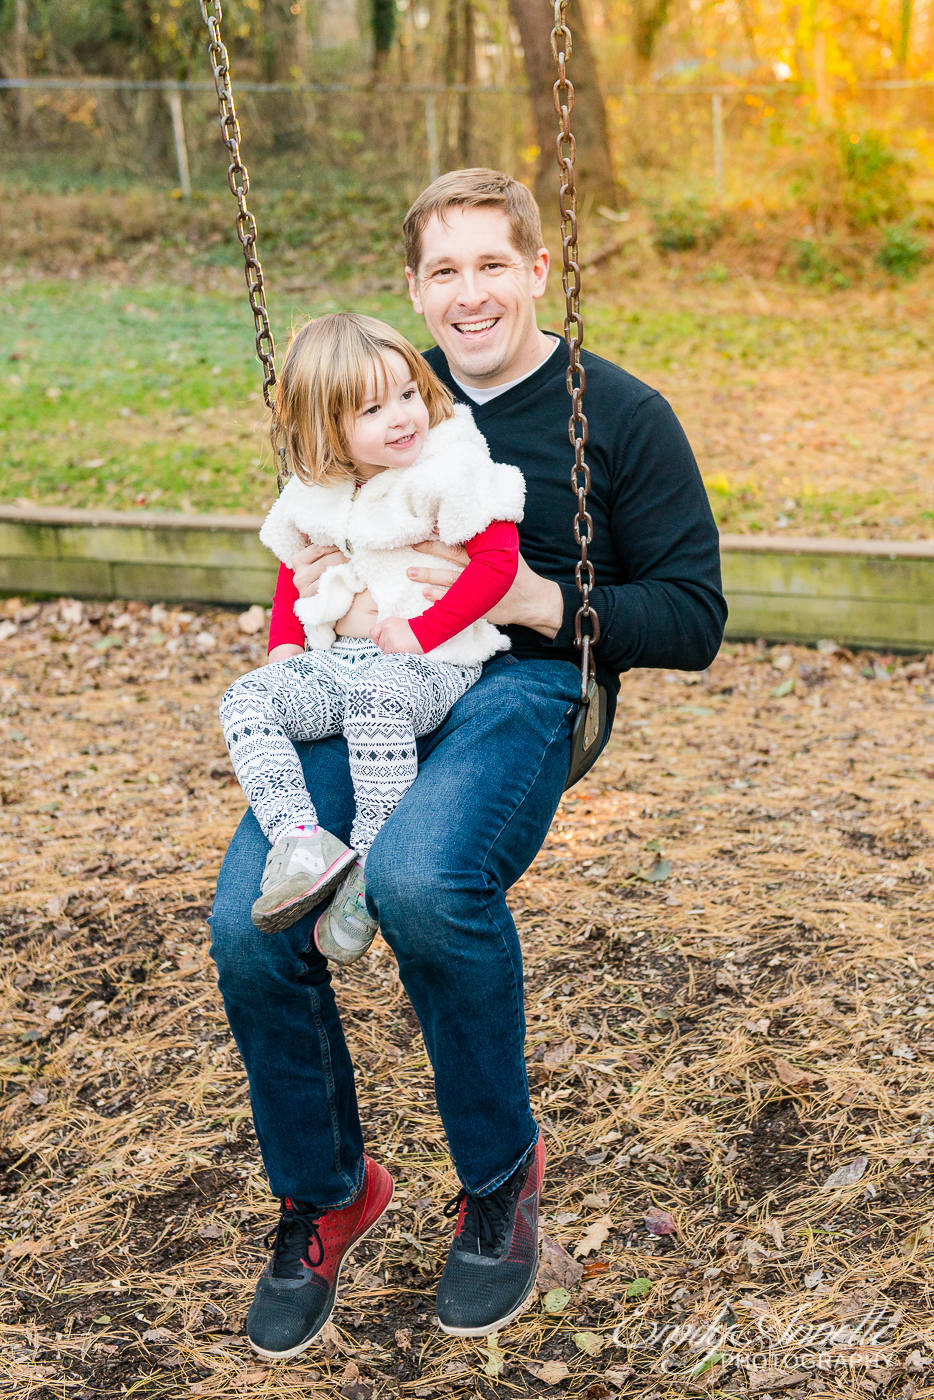 A young girl playing on the swings with her dad at Clifton Town Park in Fairfax County, Virginia